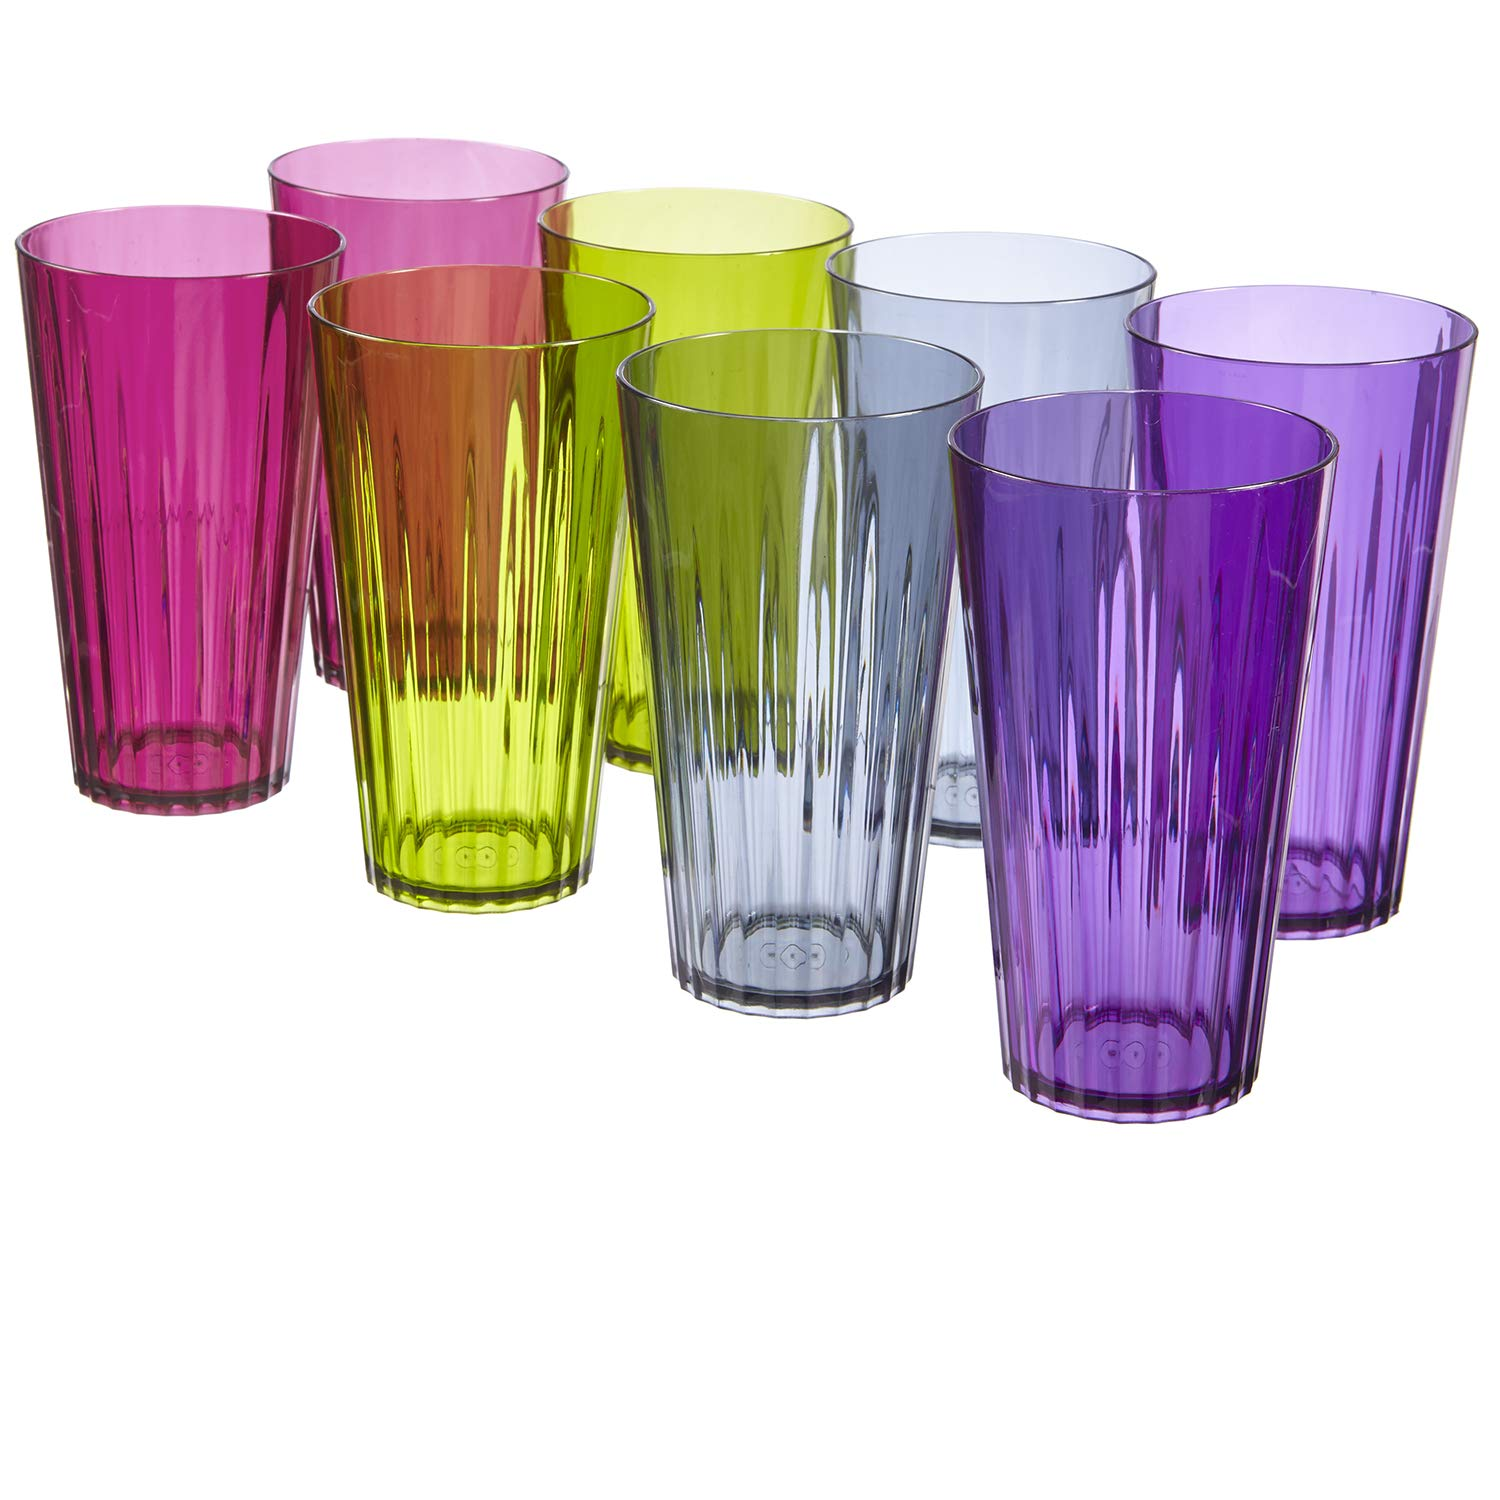 Rio 20-ounce Plastic Water Tumblers | set of 8 in 4 Soiree Colors